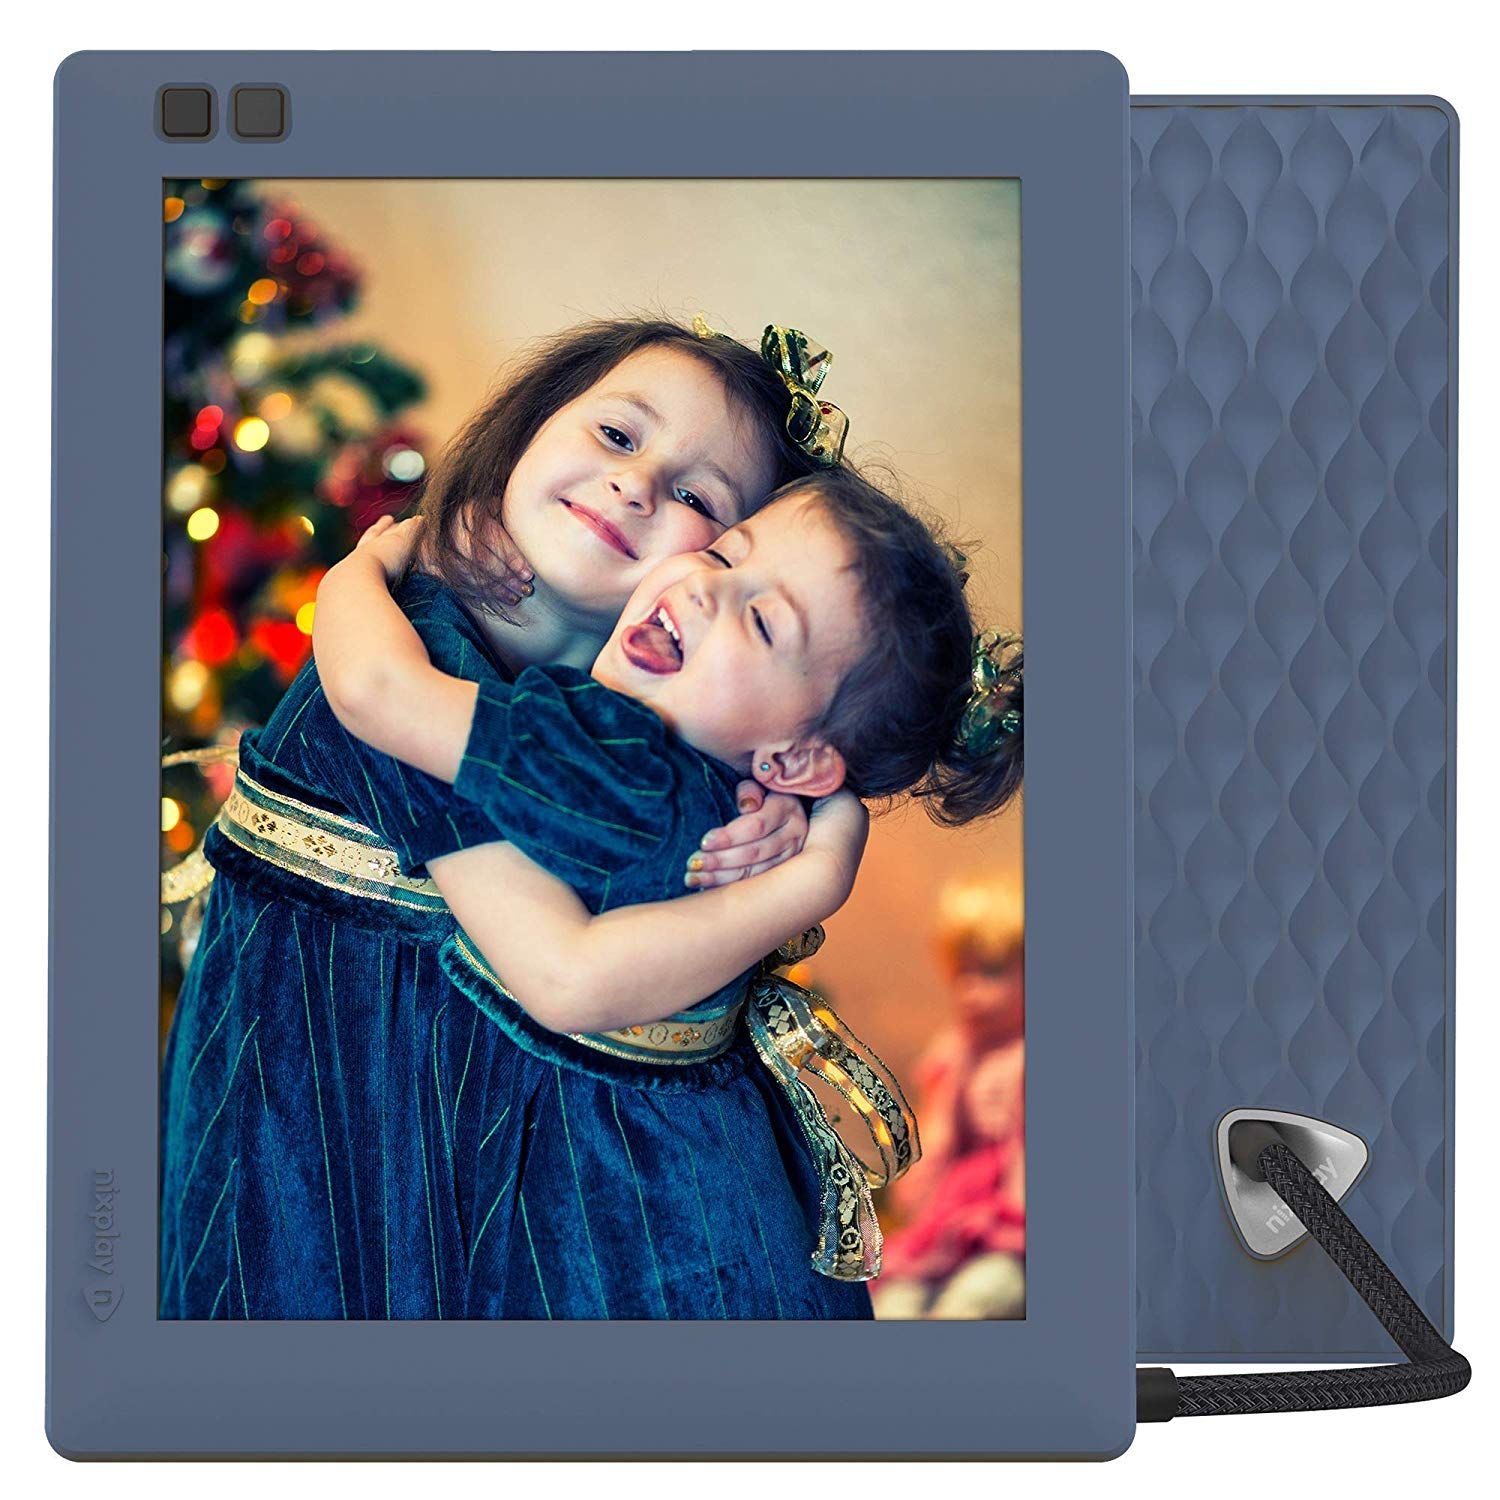 Nixplay Seed 8 Inch WiFi Digital Photo Frame with Mobile